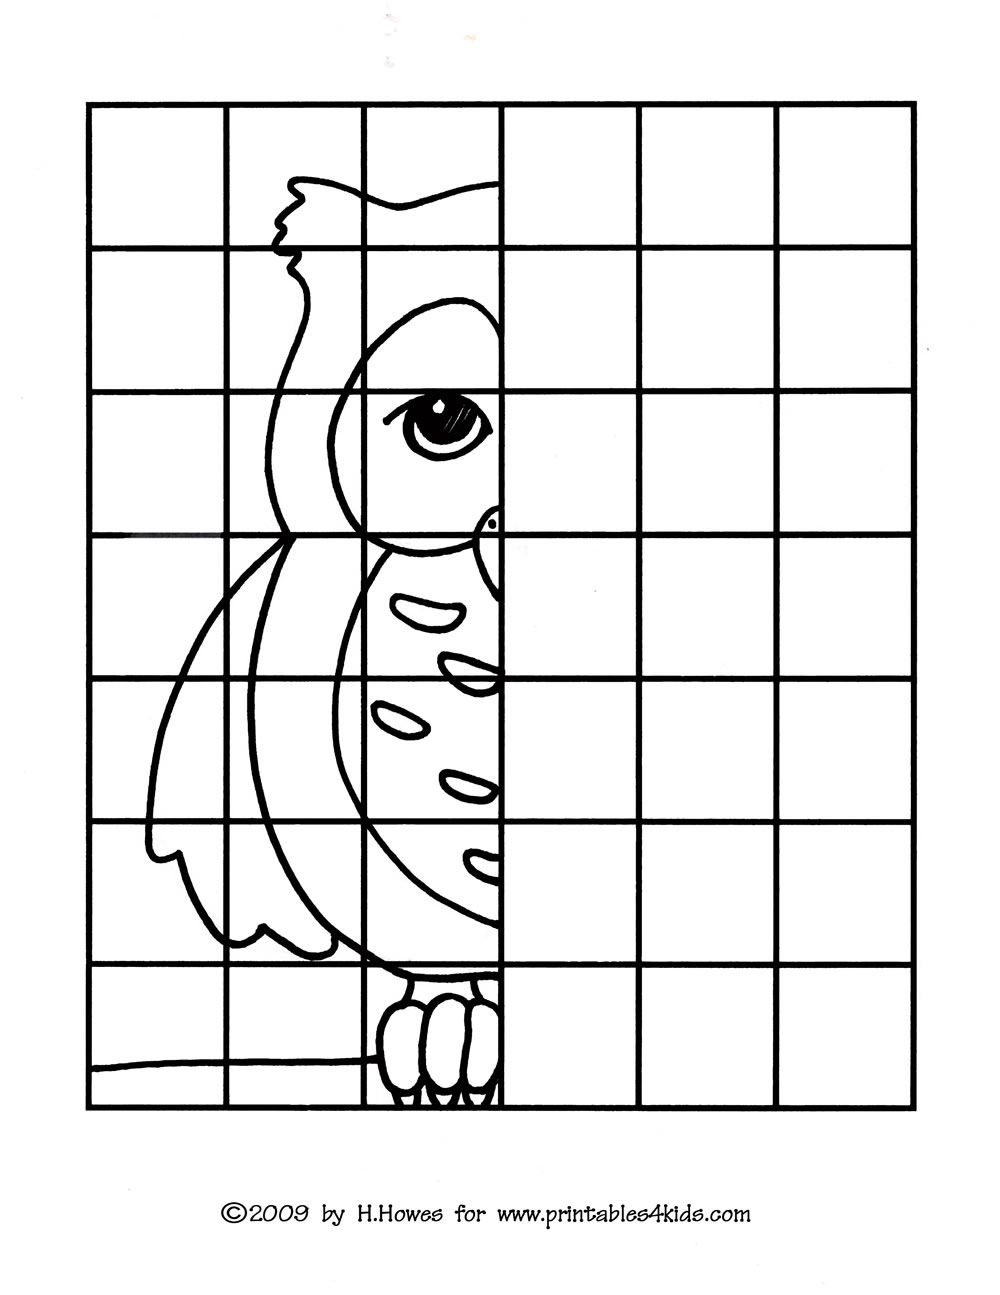 Owl Complete the Picture Drawing